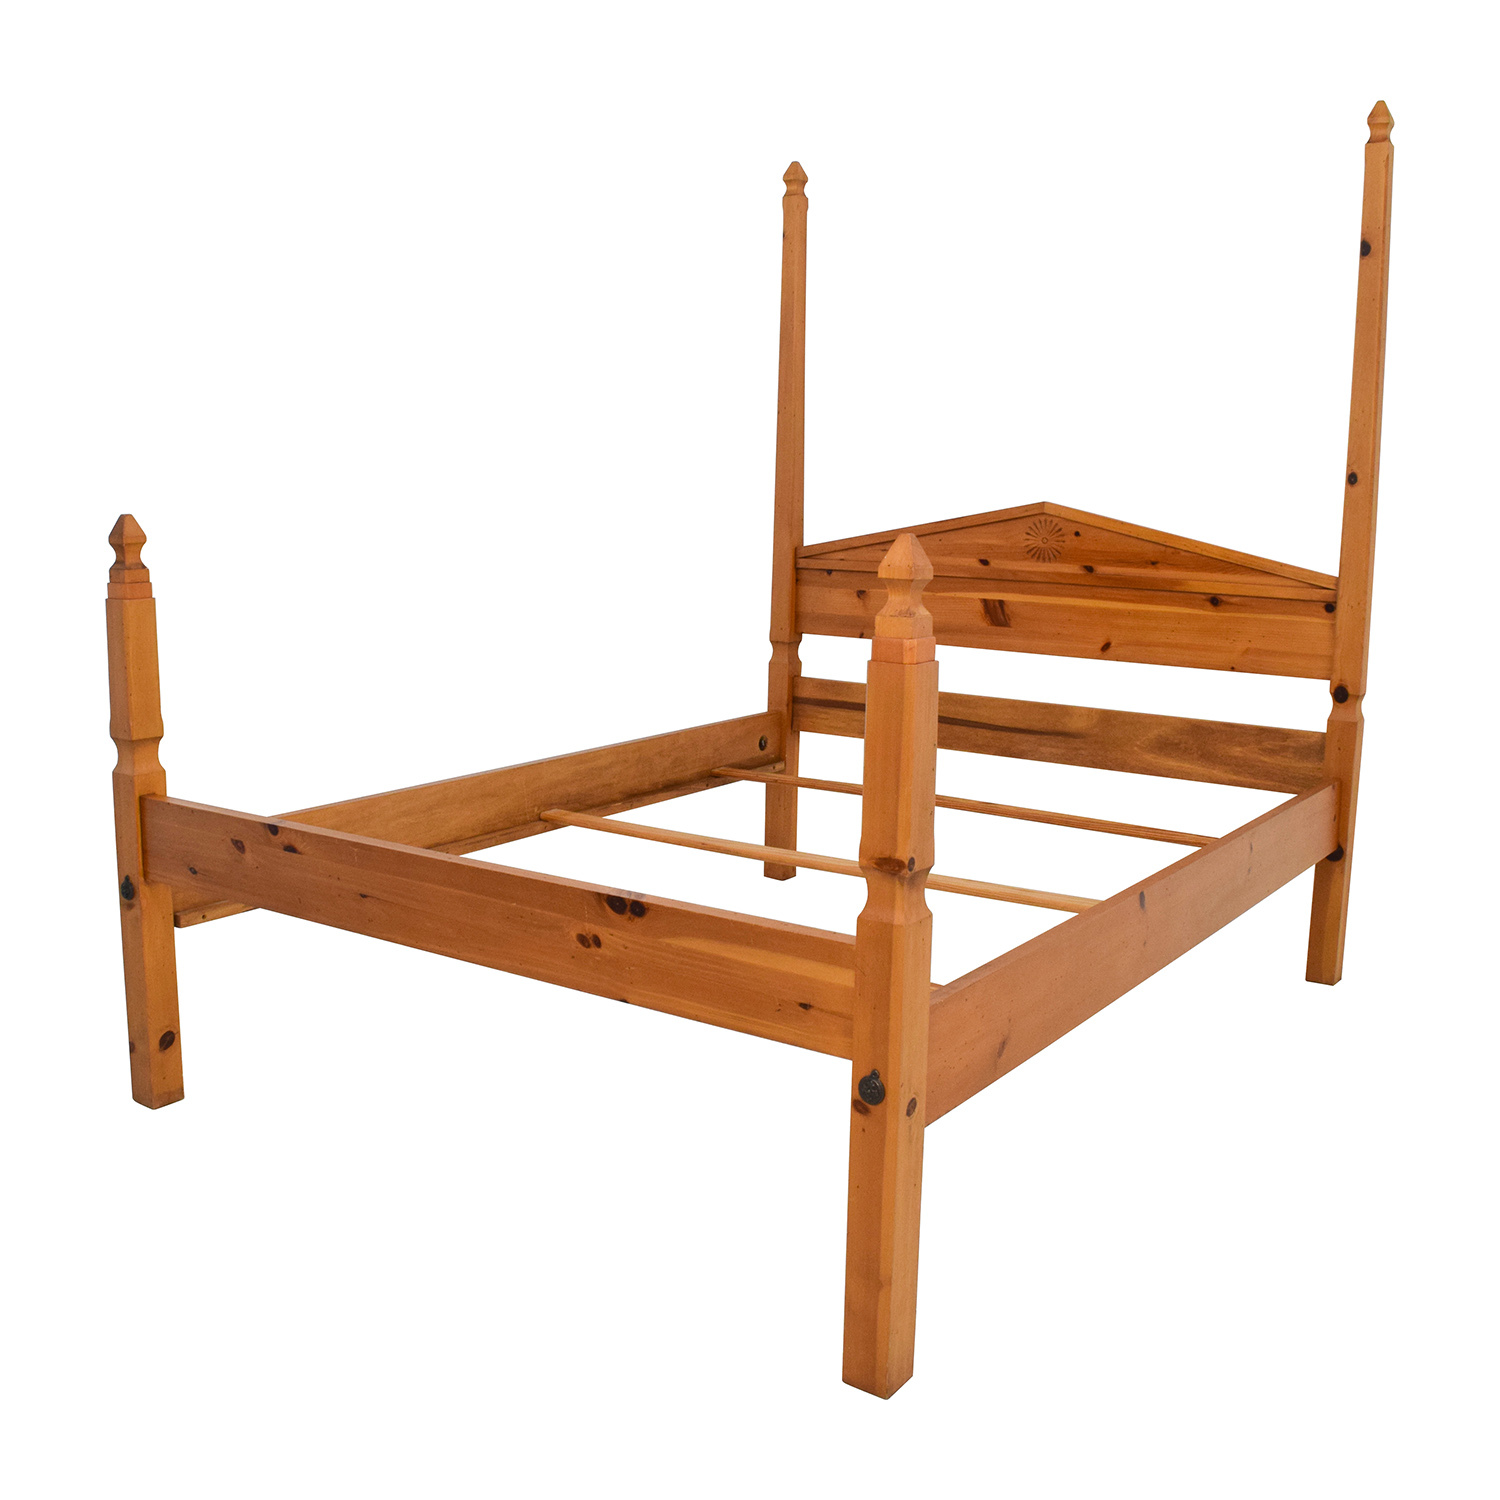 84 off pine four poster queen bed frame beds - Four poster bedroom sets for sale ...